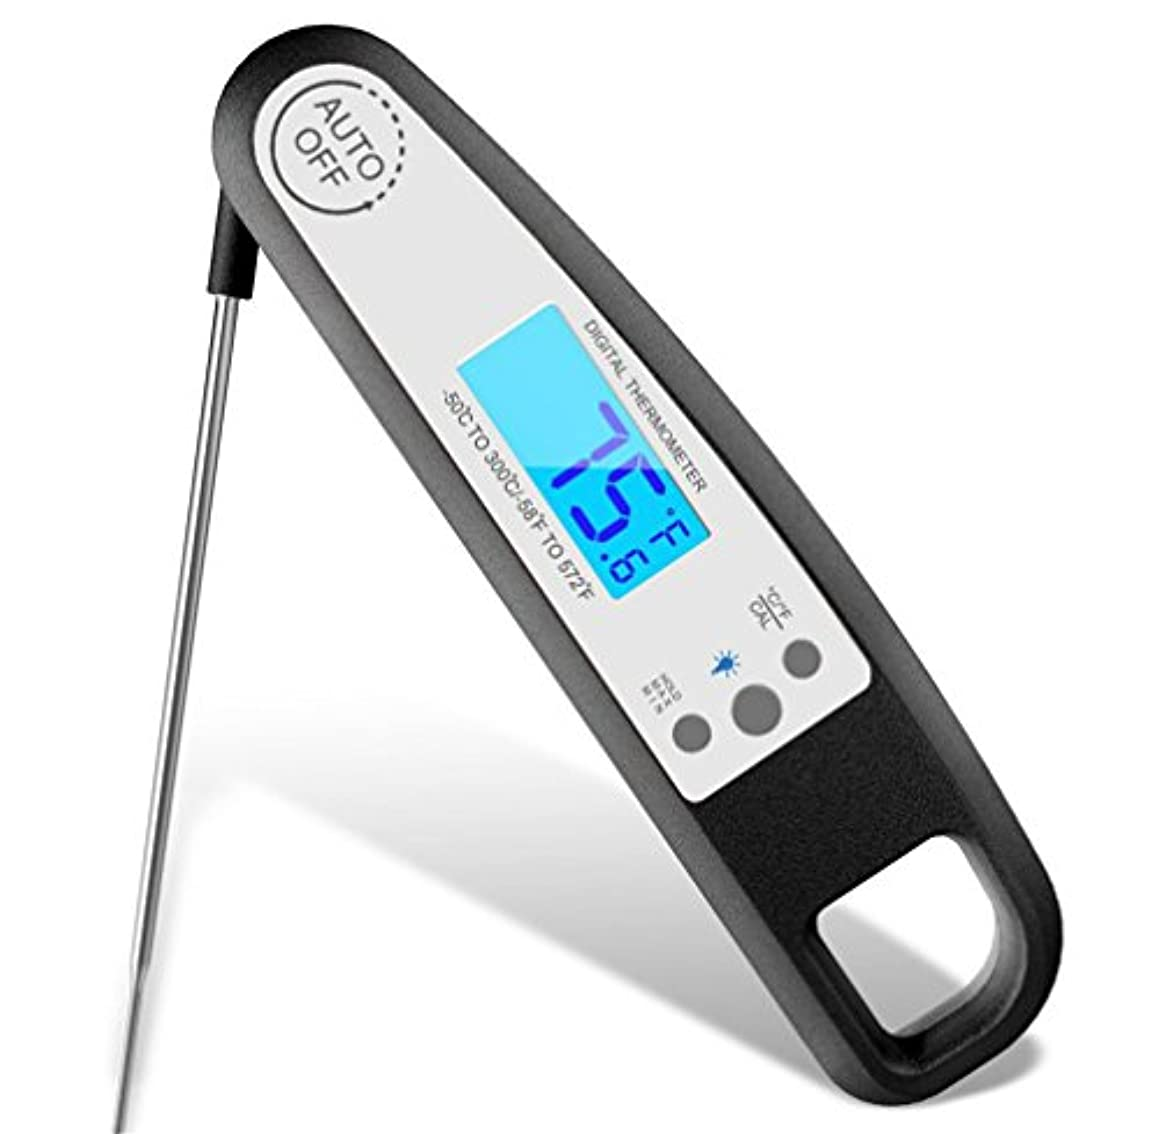 LUCKY-U Food Thermometer, Digital Meat Thermometer, Instant Read Cooking Thermometer,Black